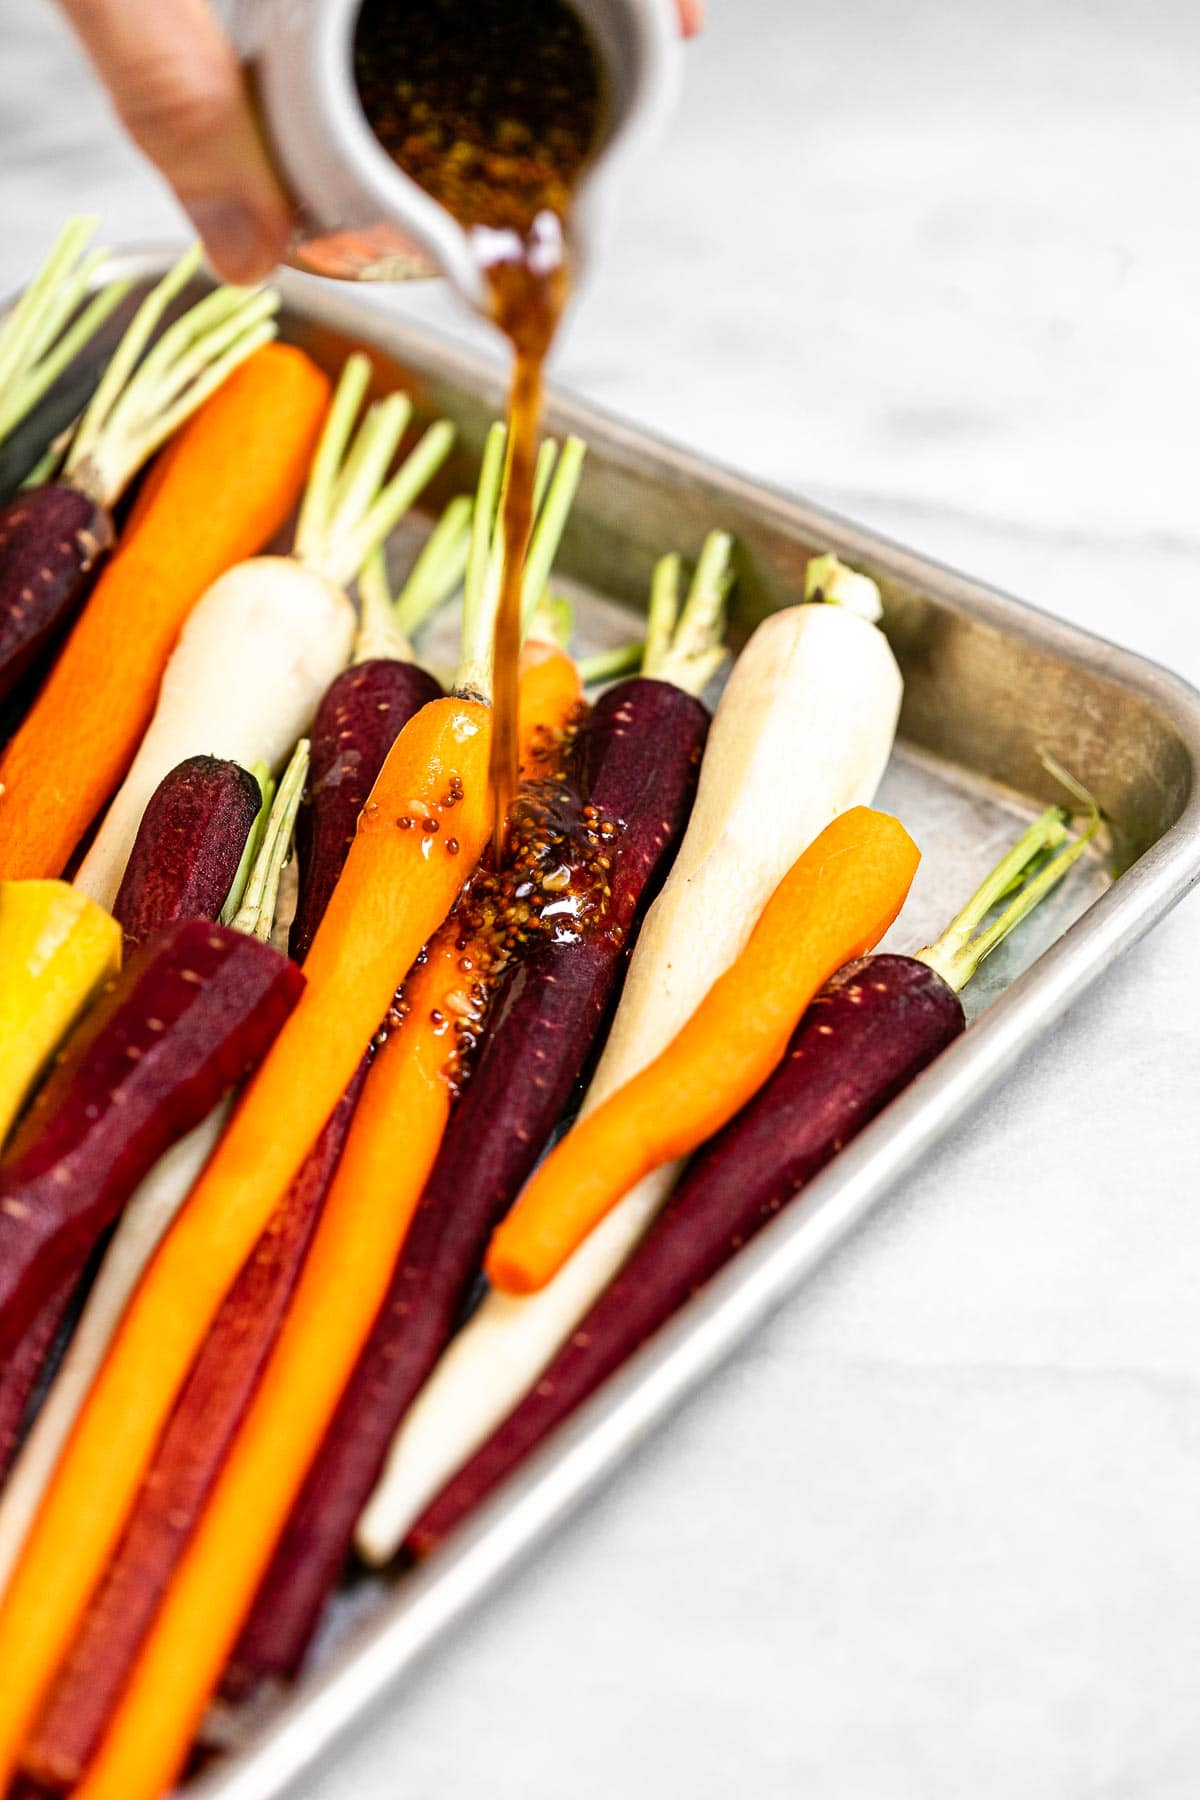 Pouring the sauce over the carrots.